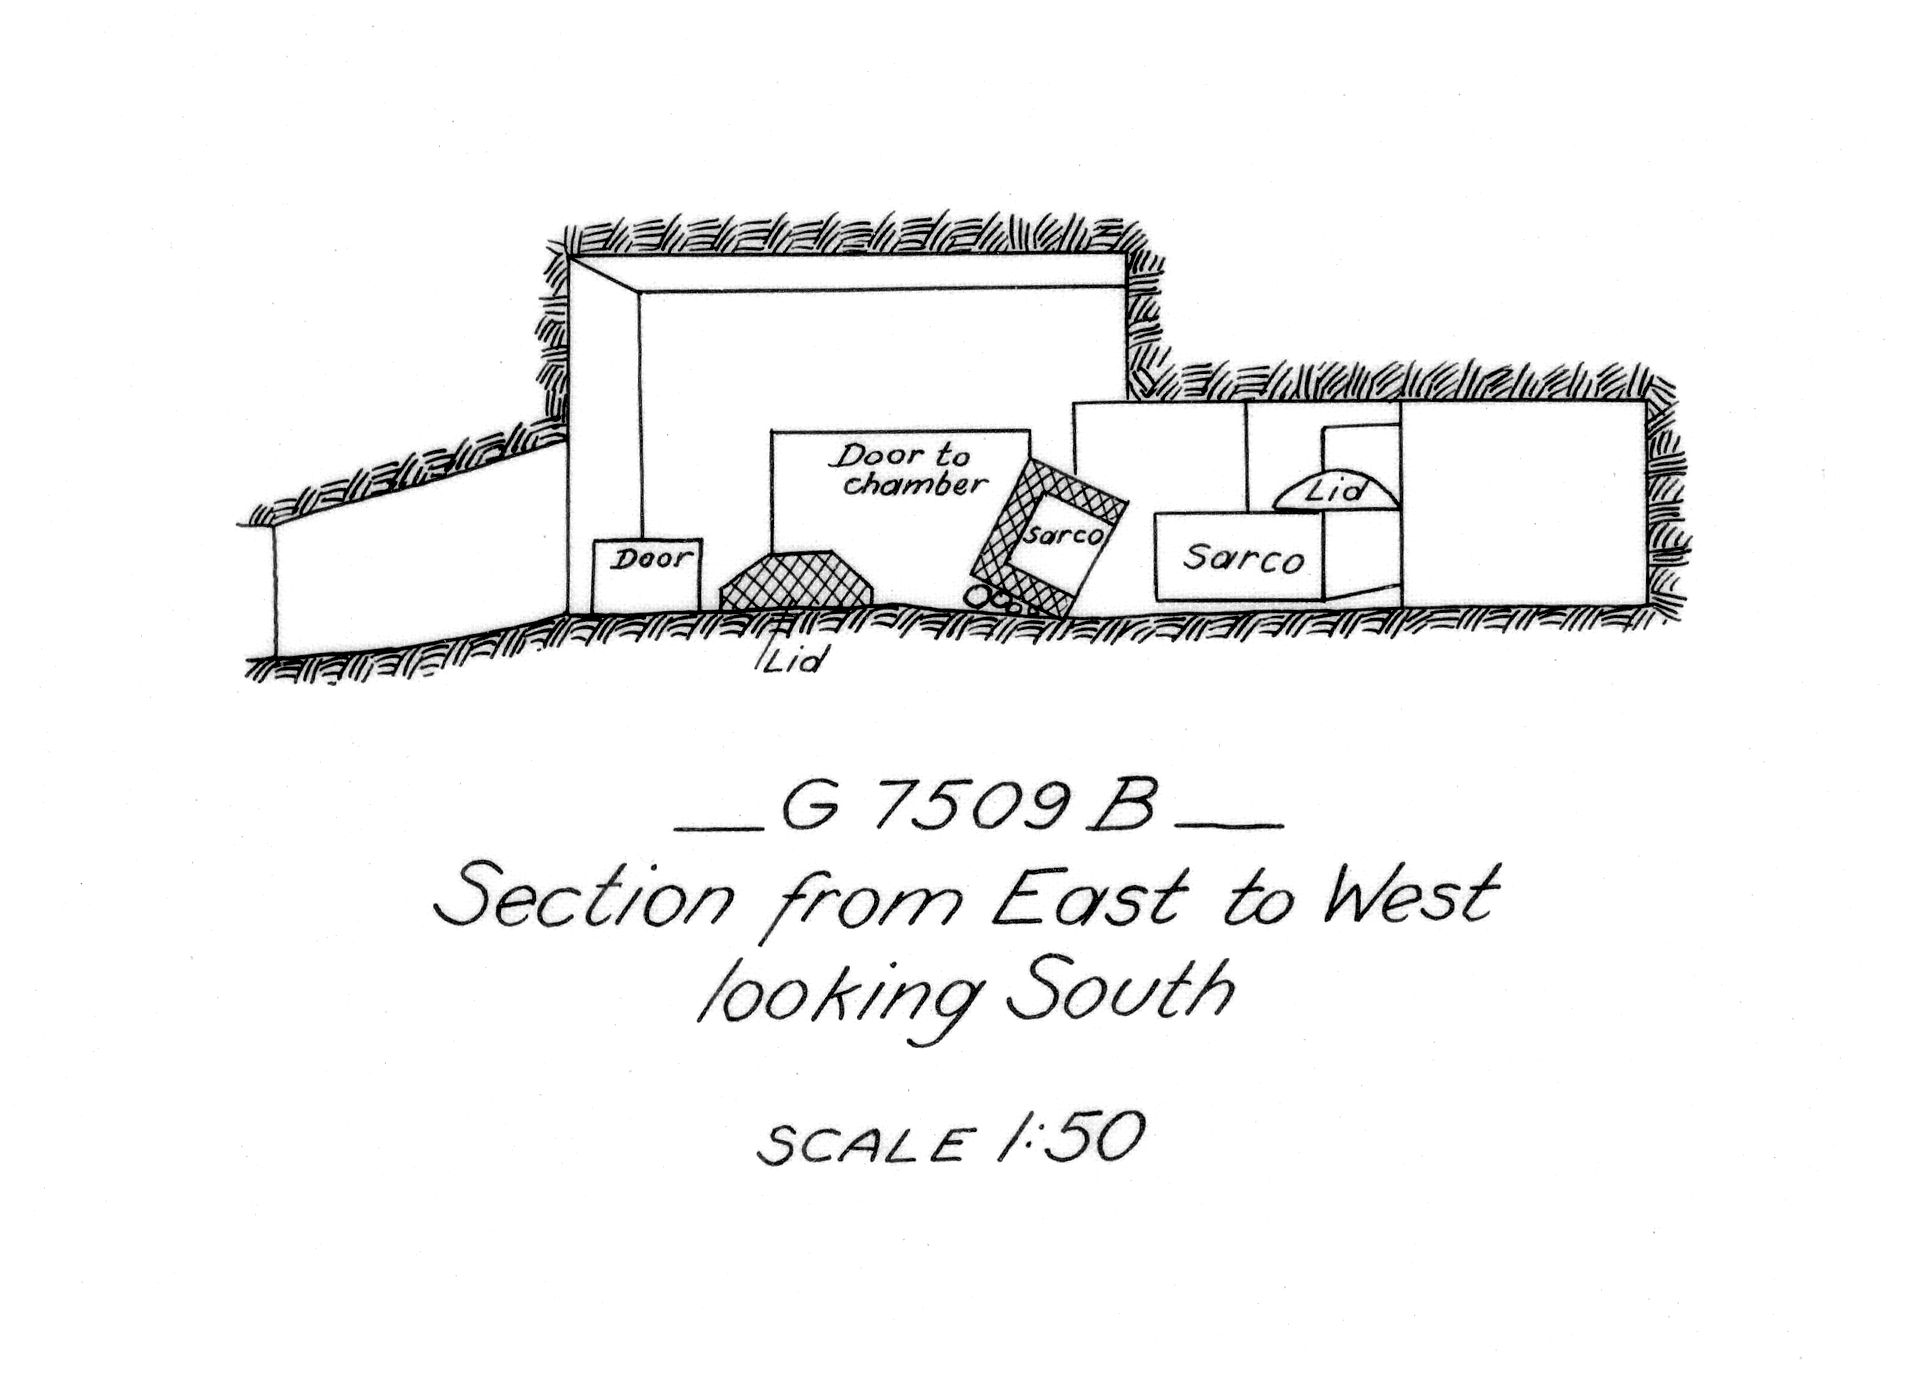 Maps and plans: G 7509, Shaft B